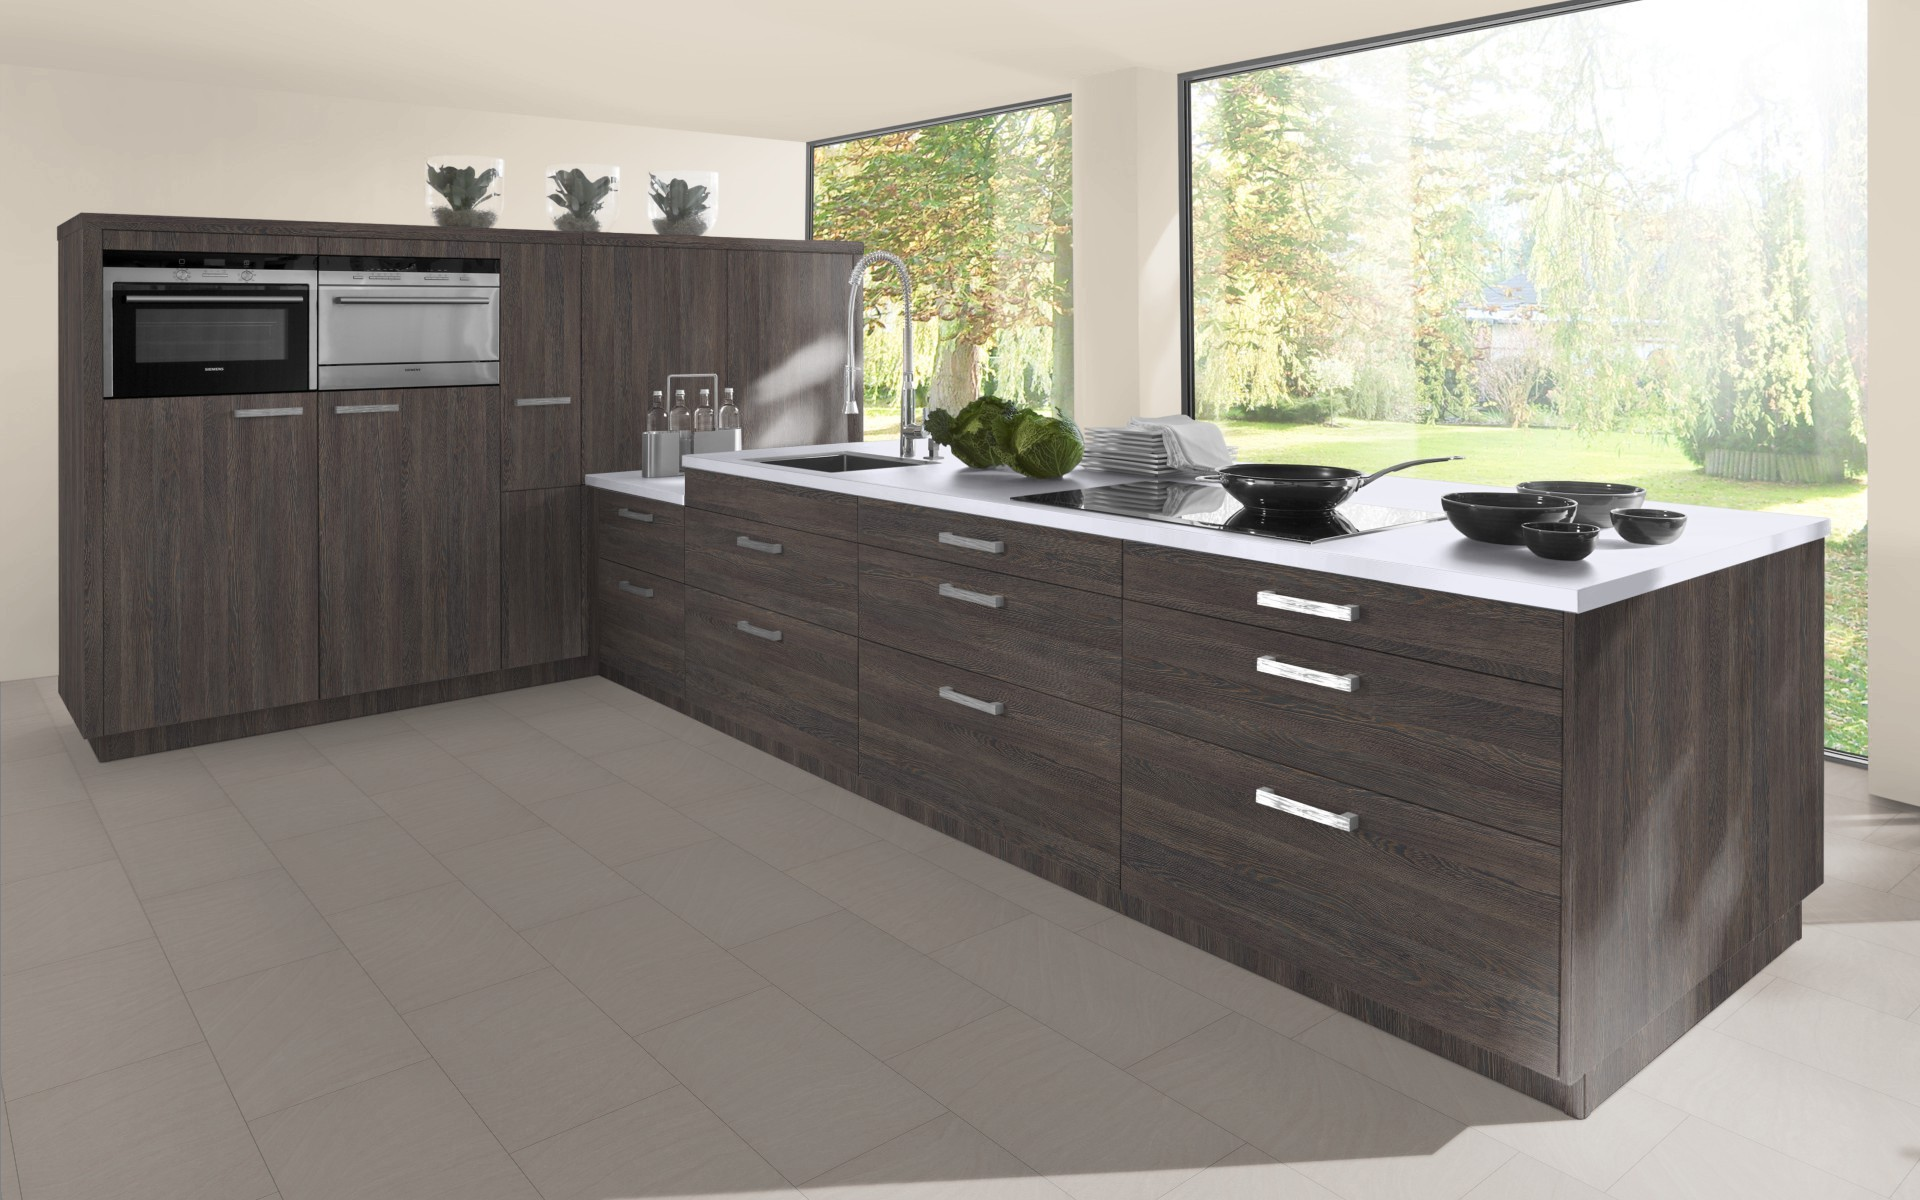 Kitchen Cabinet Sink Base Textured Wood Fully Integrated Appliance Door Trade